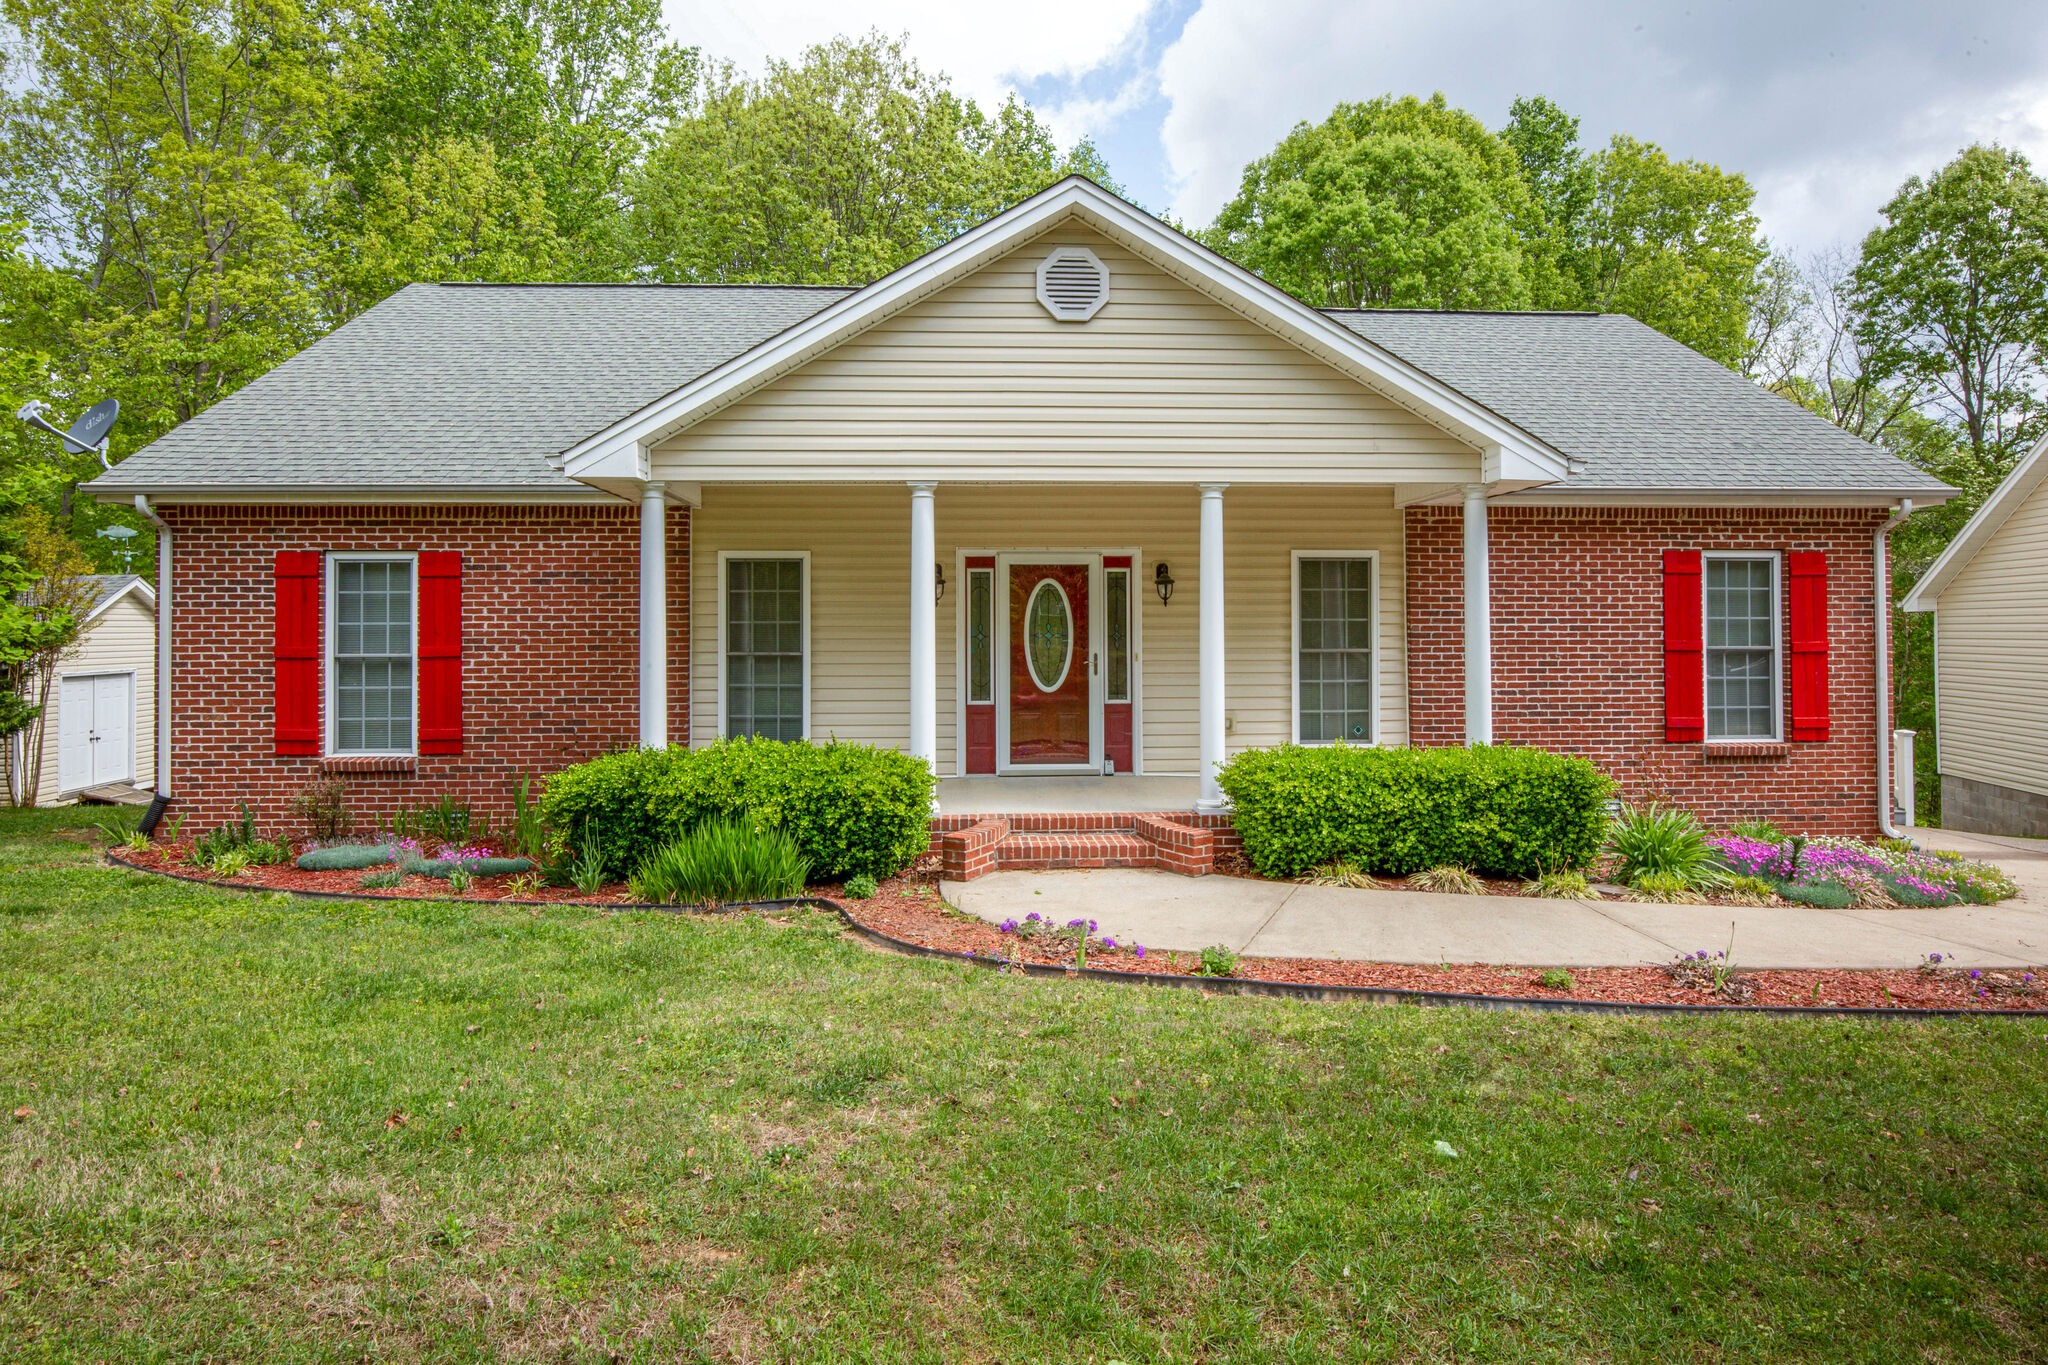 3371 Shiloh Canaan Rd Property Photo - Palmyra, TN real estate listing